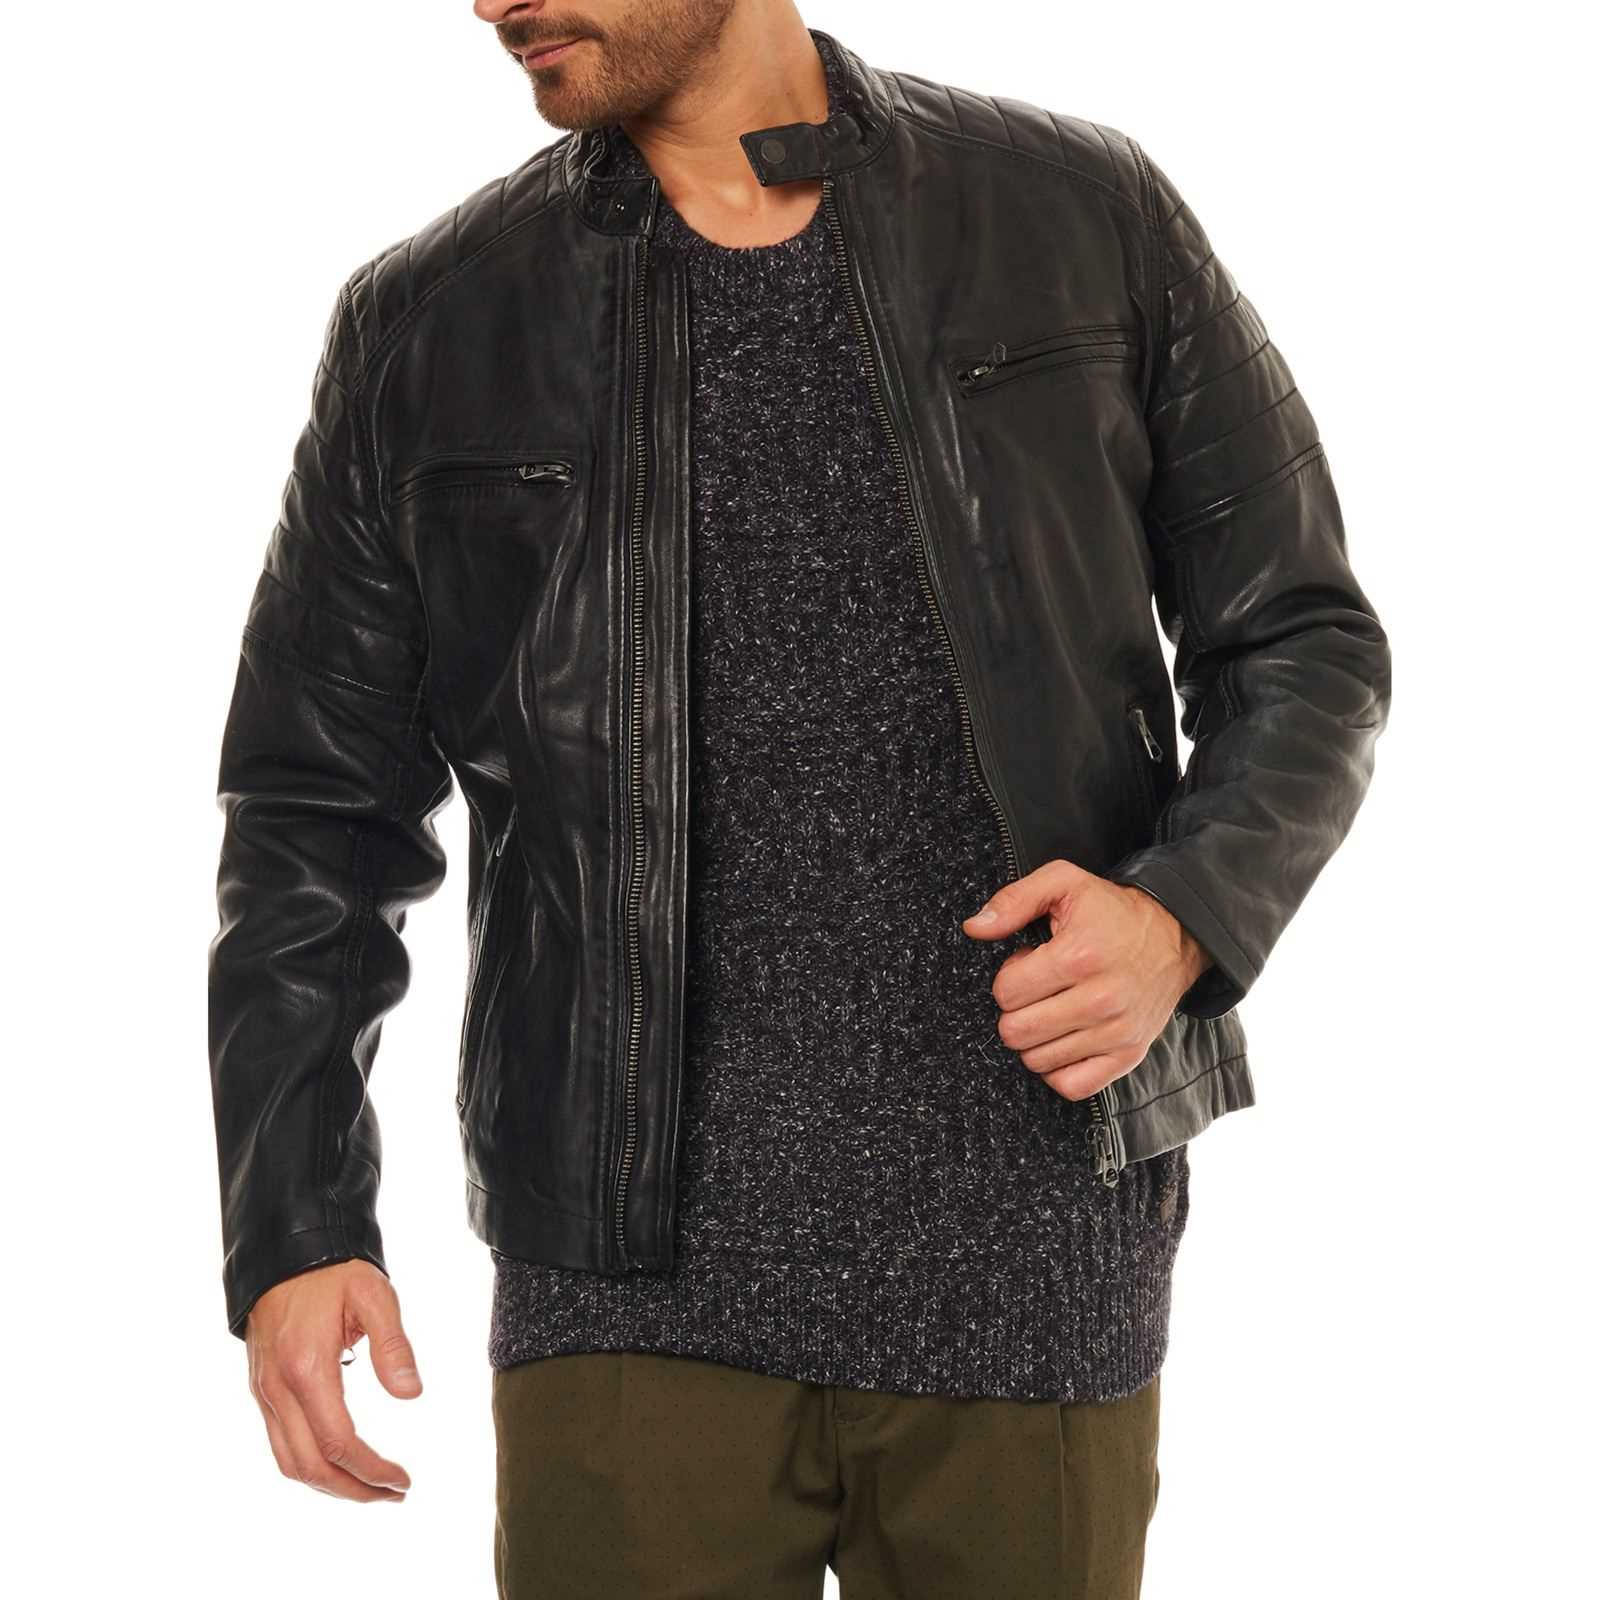 Pepe Jeans London Keith - Veste en cuir - noir   BrandAlley 160050f6eb90